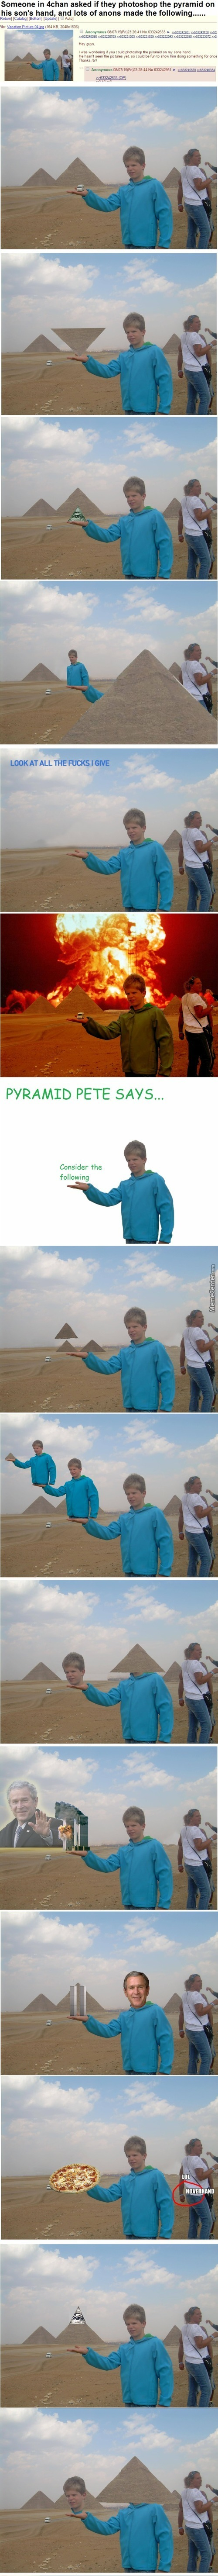 4Chan Calls Him Pyramid Pete